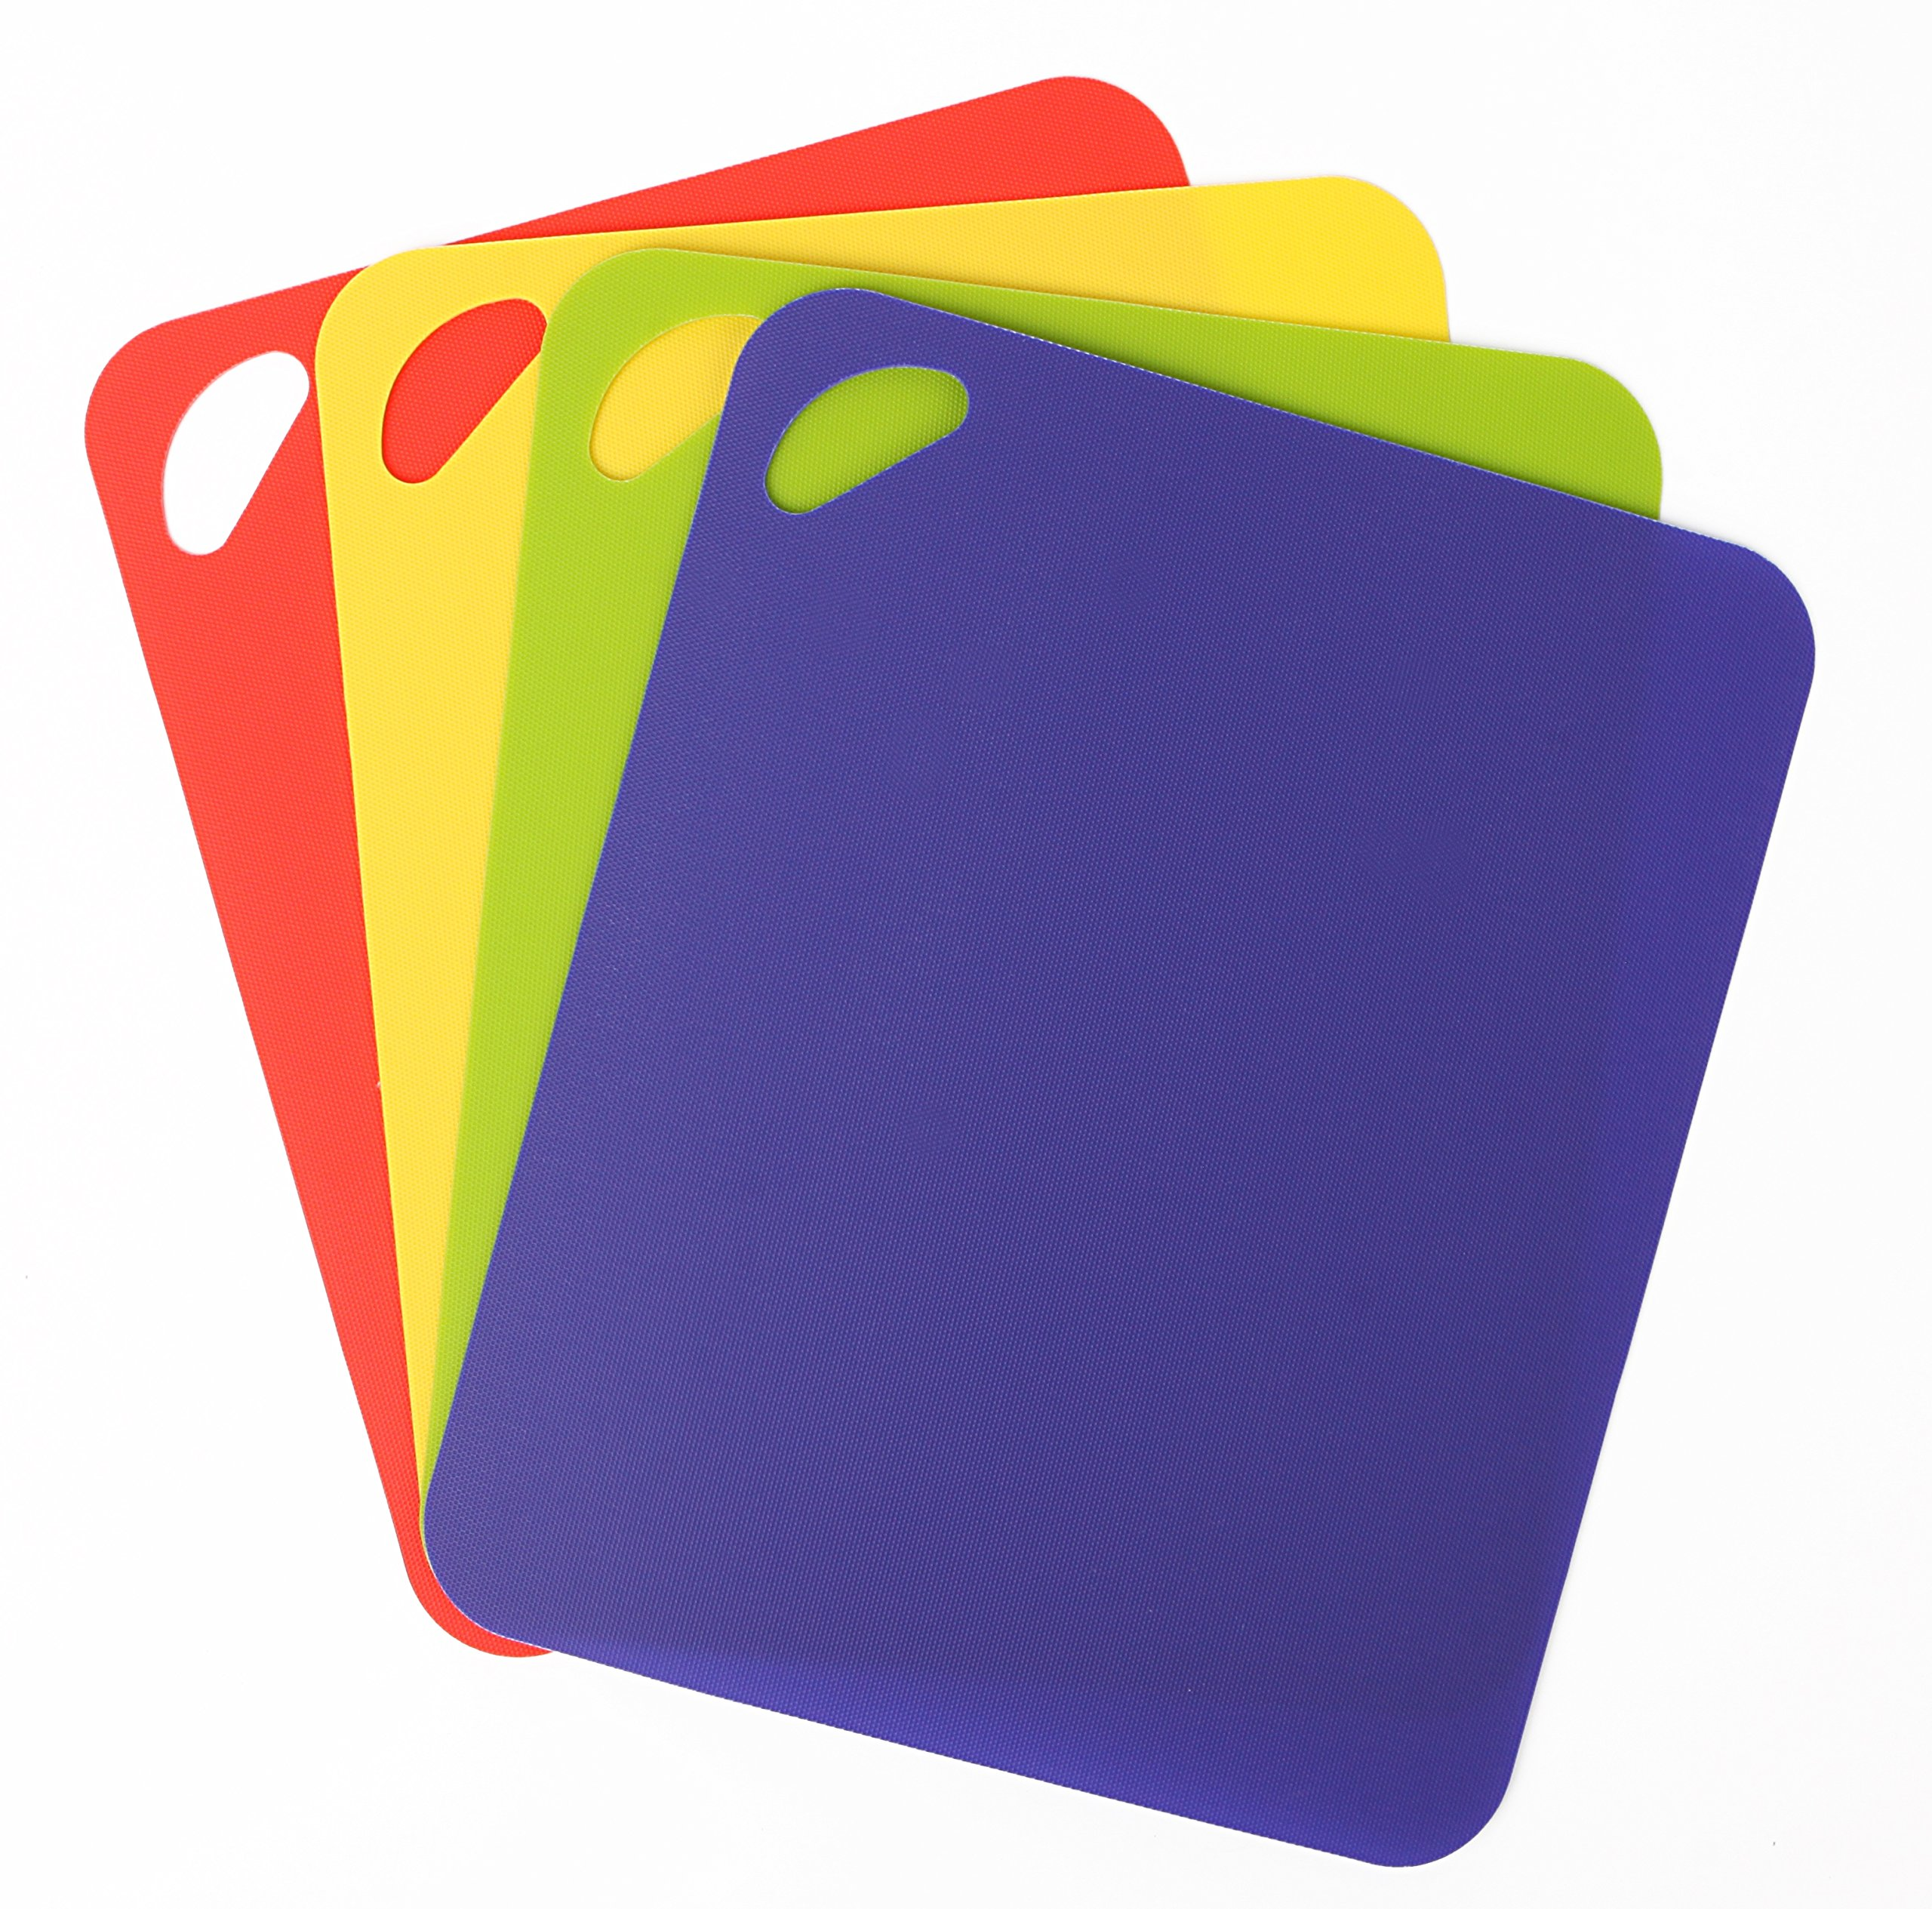 Dexas Heavy Duty Grippmat Flexible Cutting Board Set of Four, 11.5 by 14 inches, Blue, Green, Yellow, Red by Dexas